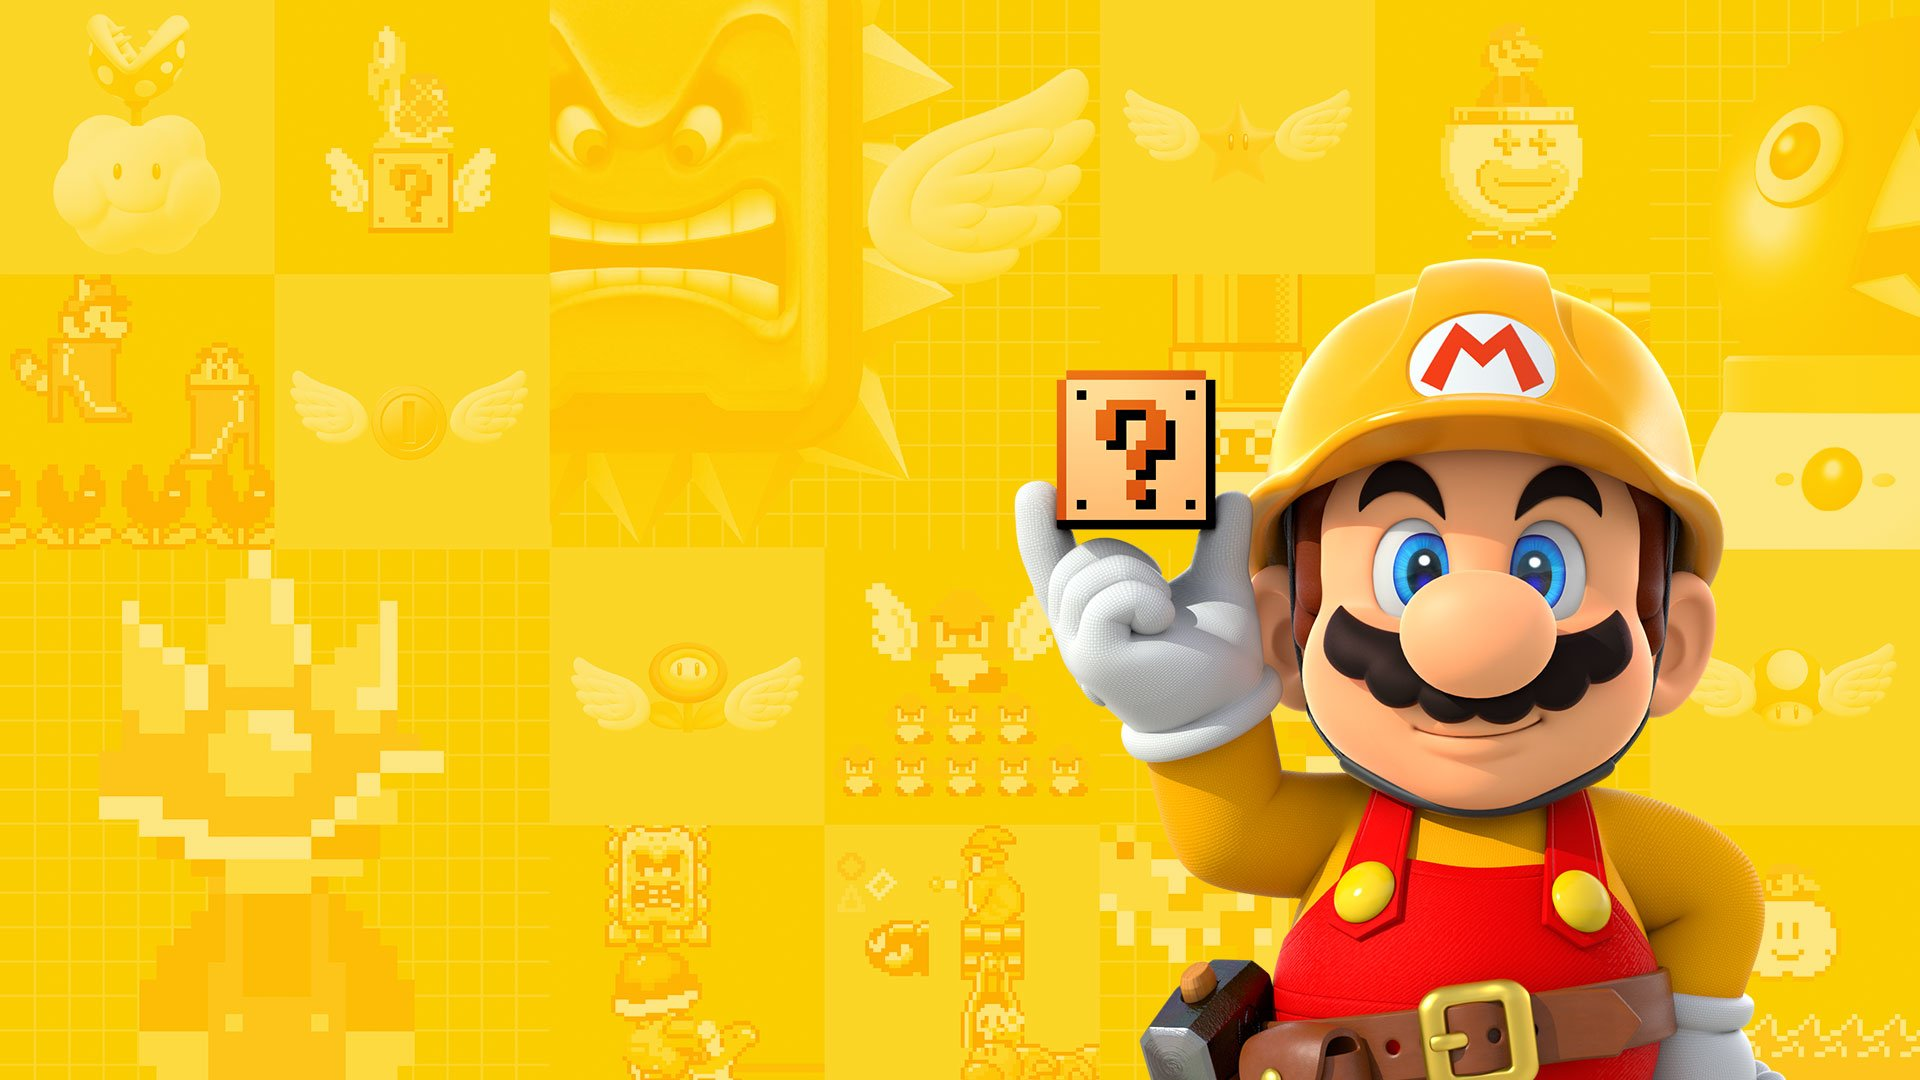 7 Super Mario Maker Hd Wallpapers Background Images Wallpaper